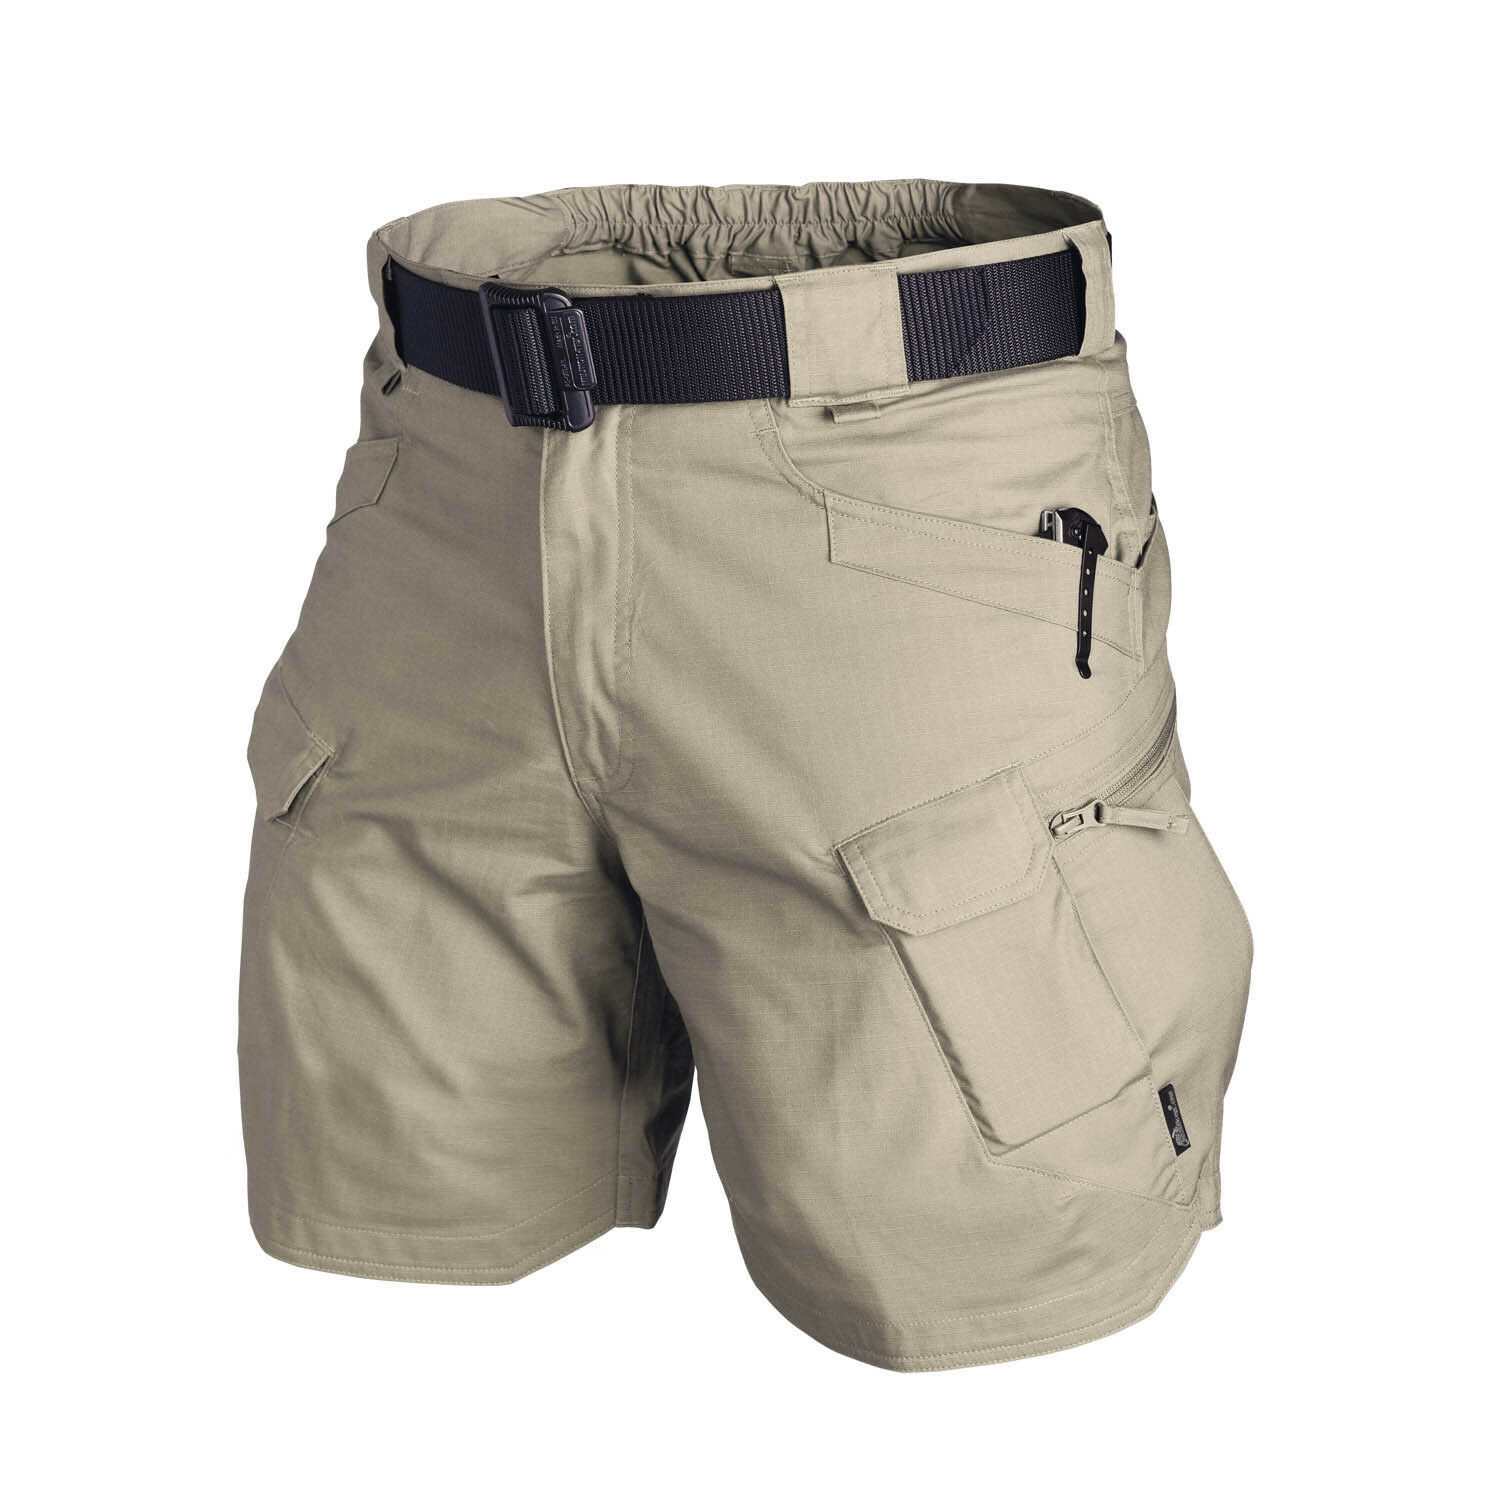 Helikon Tex UTS URBAN TACTICAL Outdoor Freizeit SHORTS 8.5 Gr Hose kurz Khaki Gr 8.5 S 42bc56